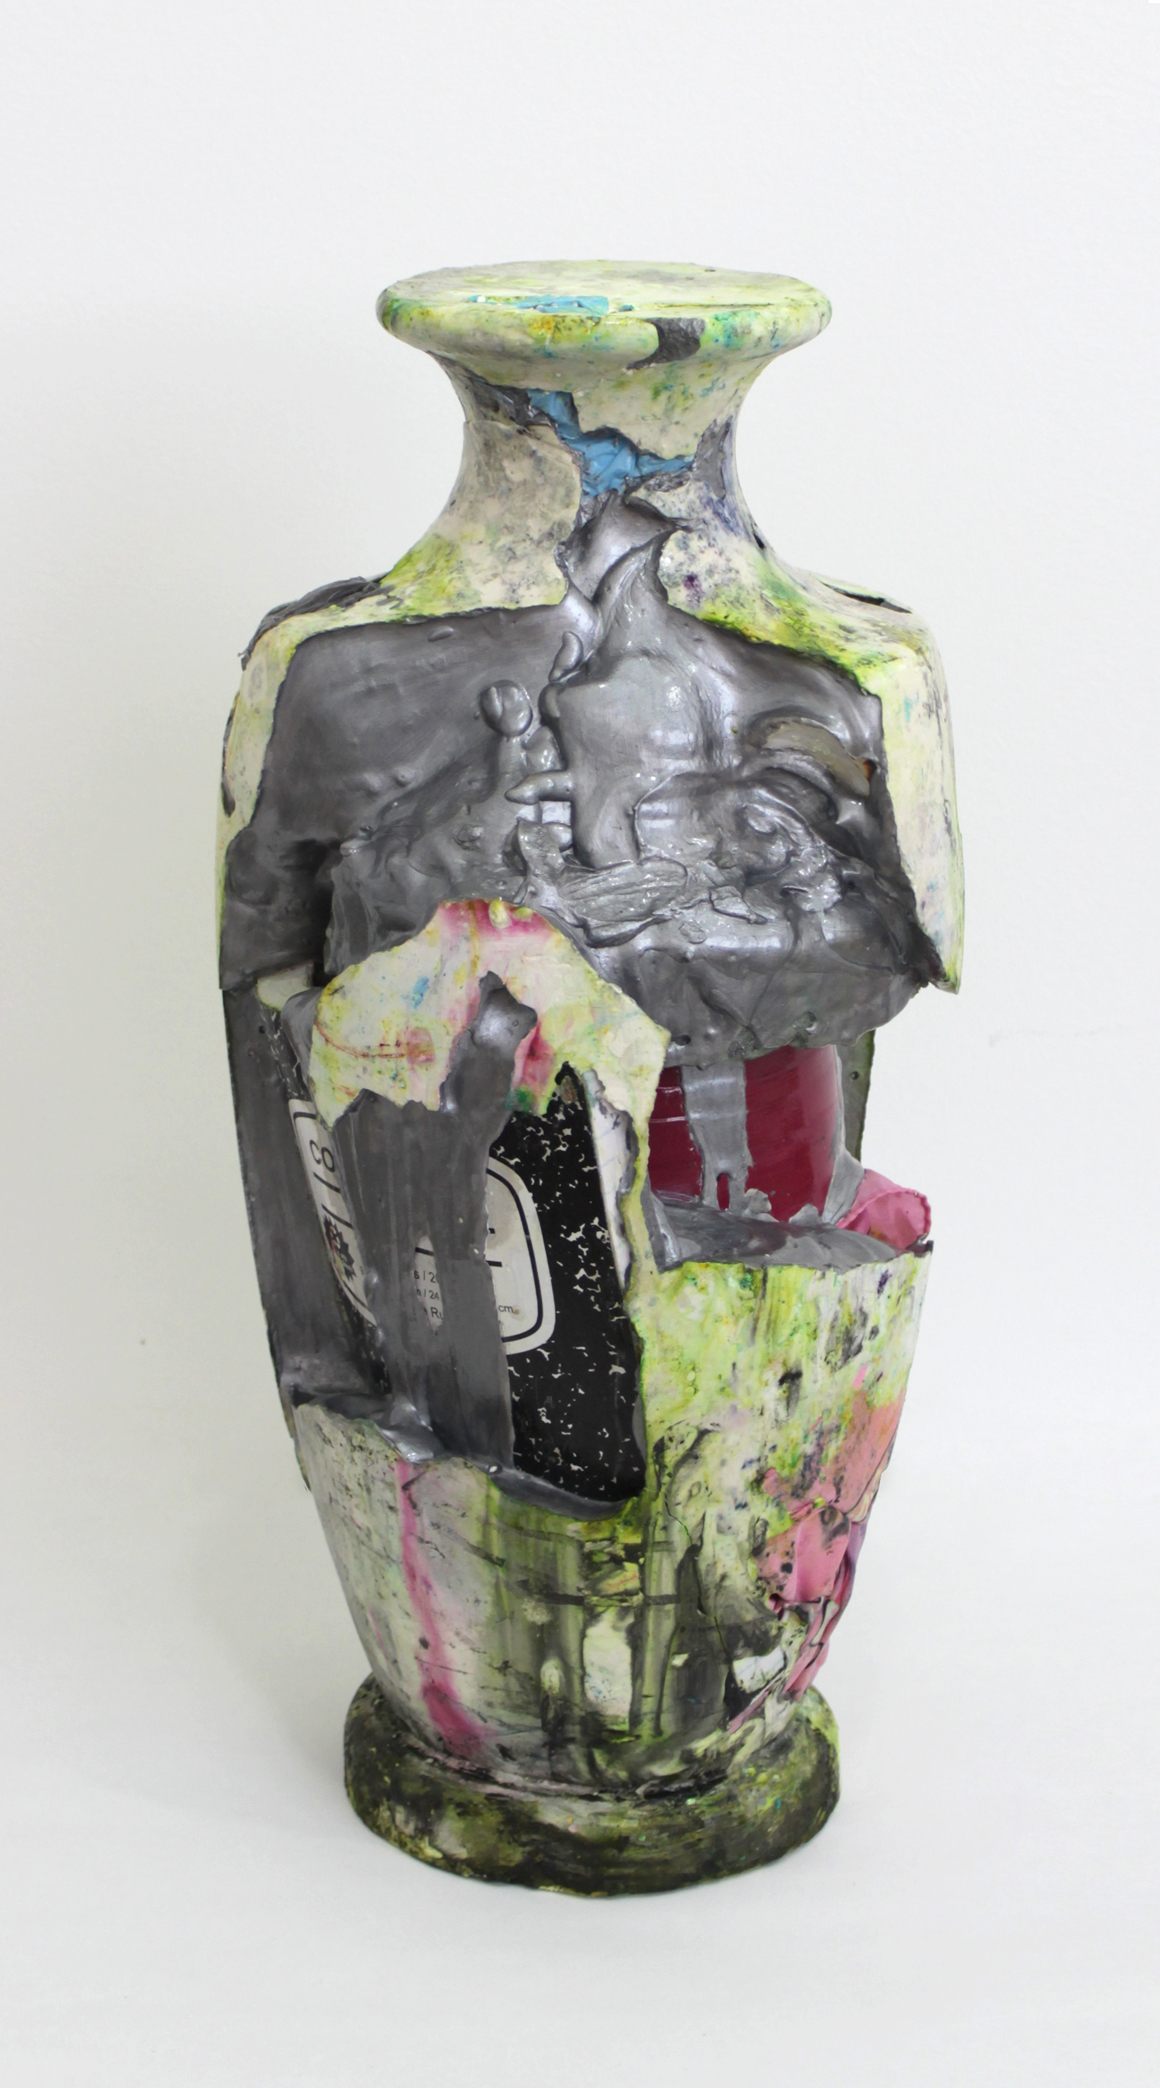 "<p><span class=""name"">Lindsay Lawson</span><br><em>Basico</em><span class='media'>Vase, notebook, bandana, glass, seashells, floral, foam, nitrile glove, plaster, pigment, varnish</span>20 x 8 x 8in<br>2016<br><a class='inquire' href='mailto:info@gildargallery.com?subject=Artwork Inquiry LLAW0001&body=I am interested in finding out more about Basico by Lindsay Lawson'>Inquire</a></p>"